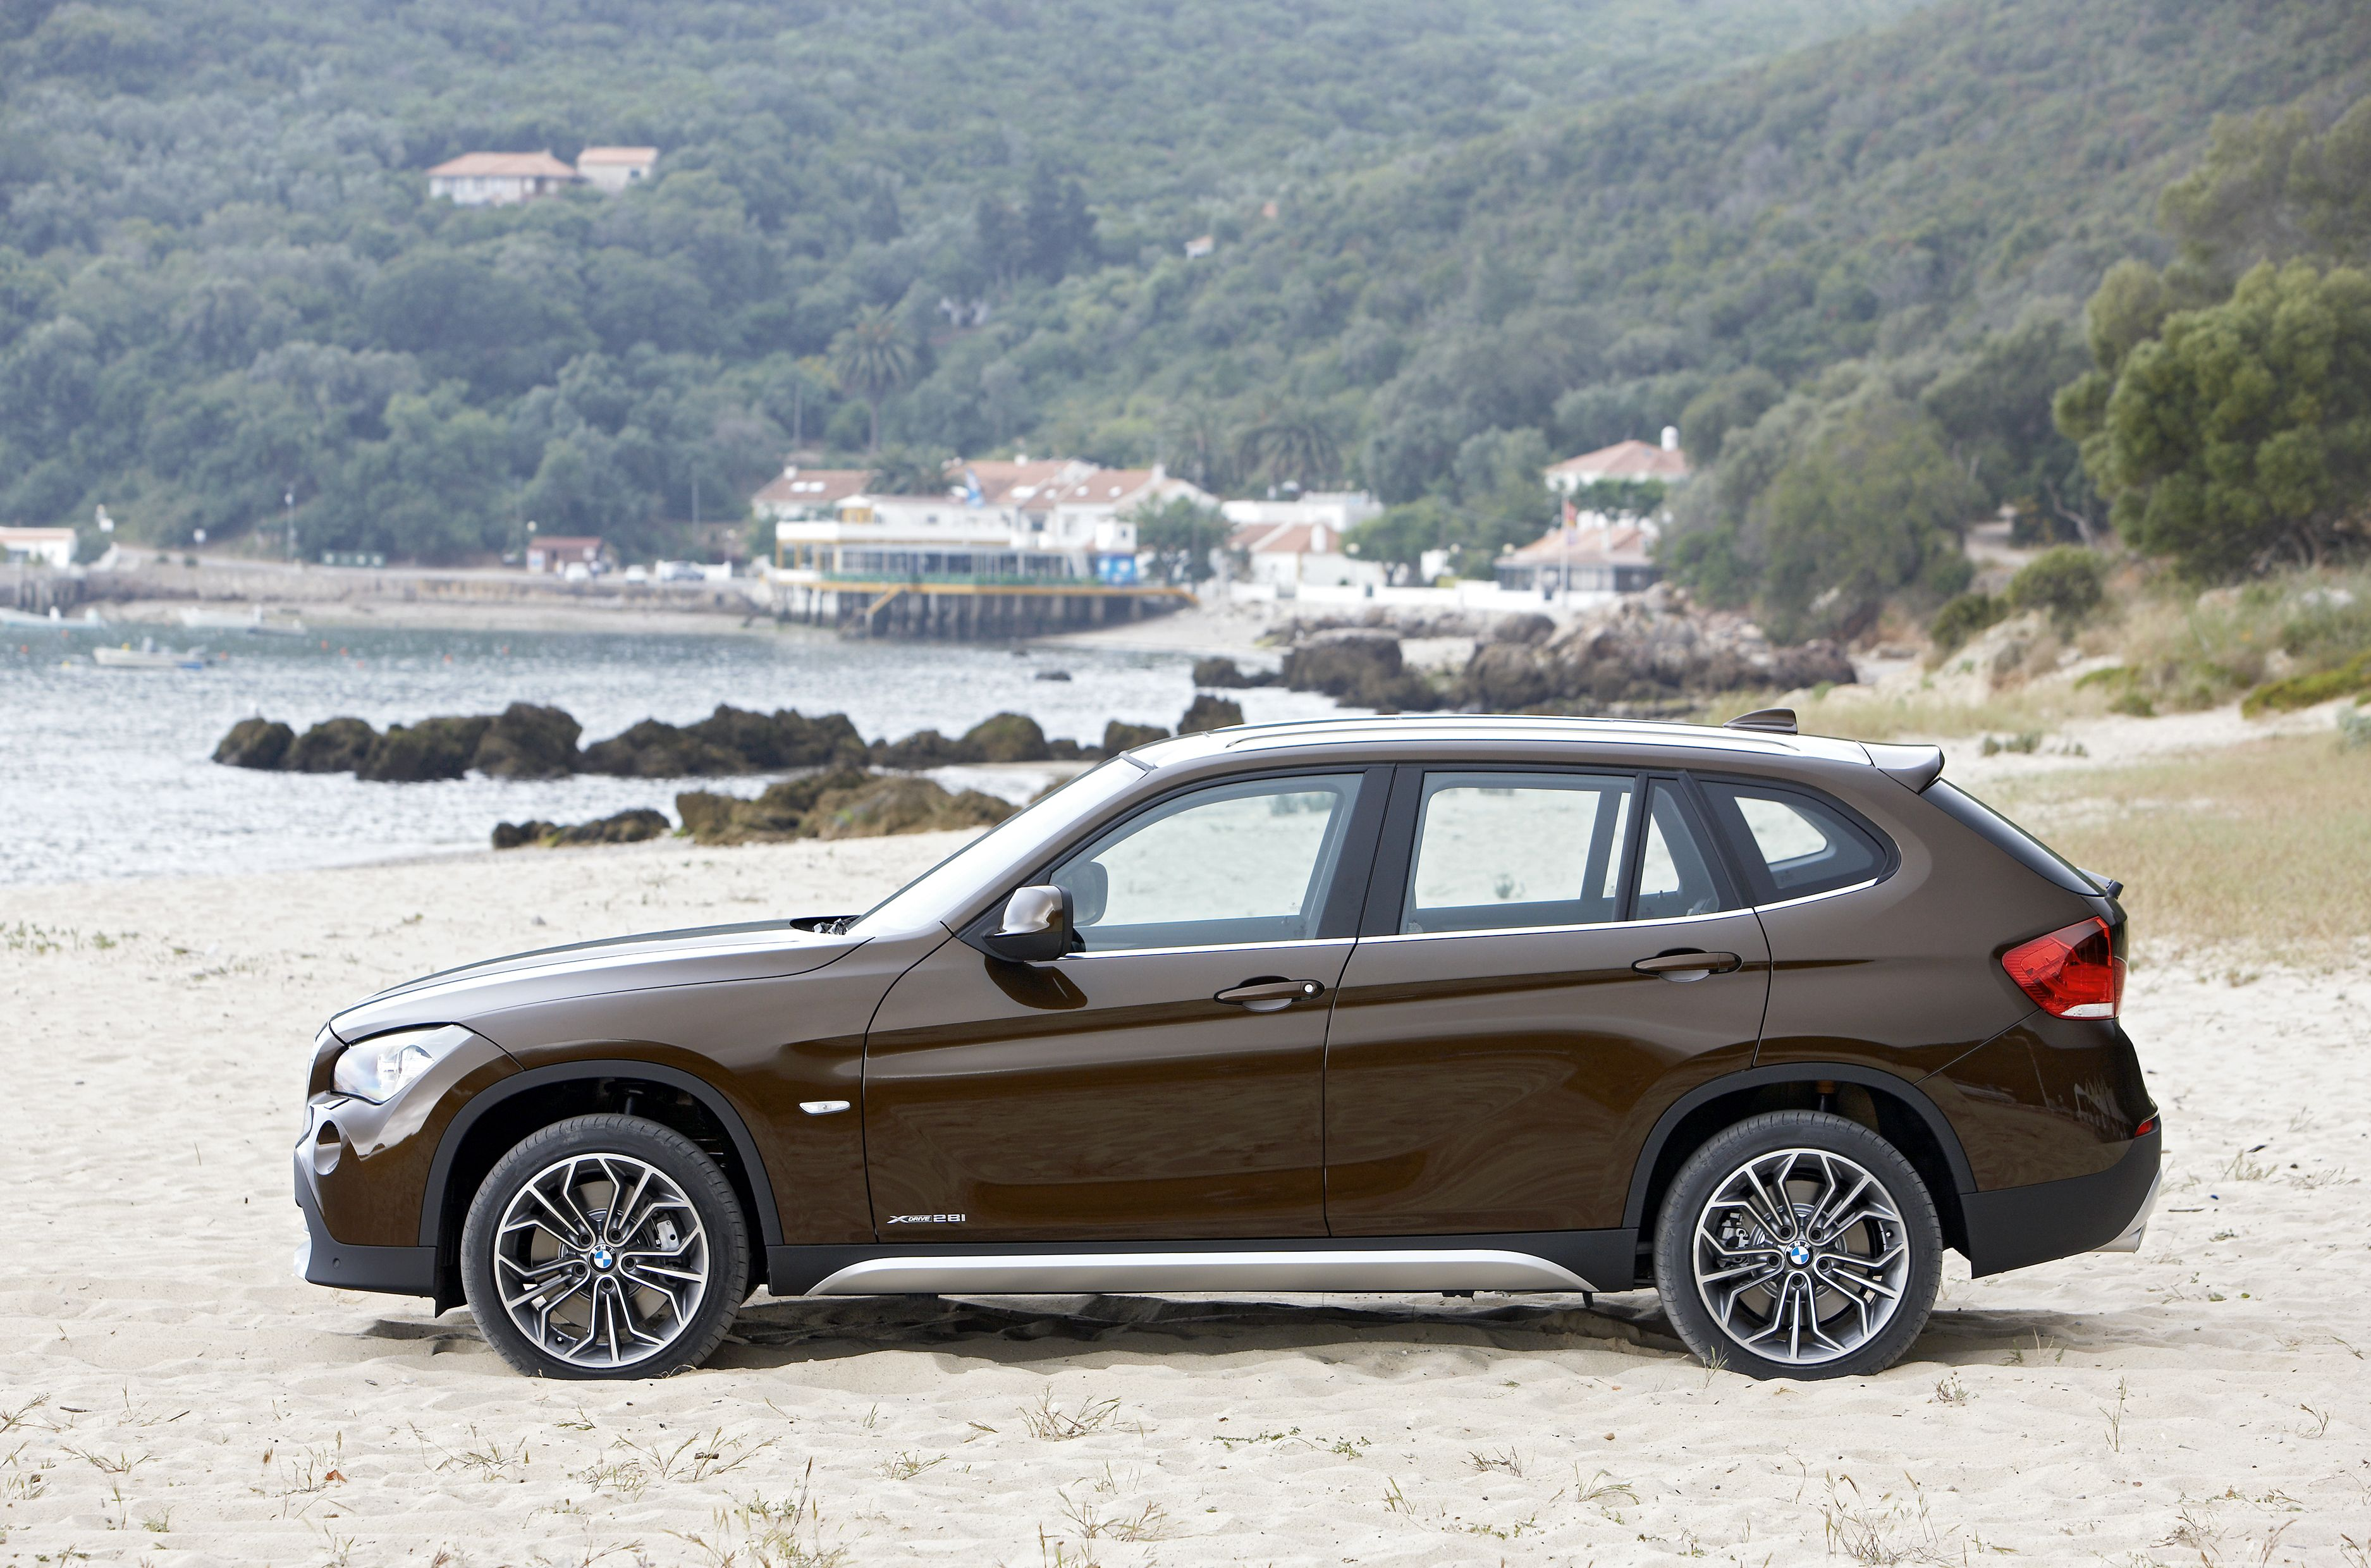 BMW x1 So Legit! (With images) | Bmw, Widescreen wallpaper ...